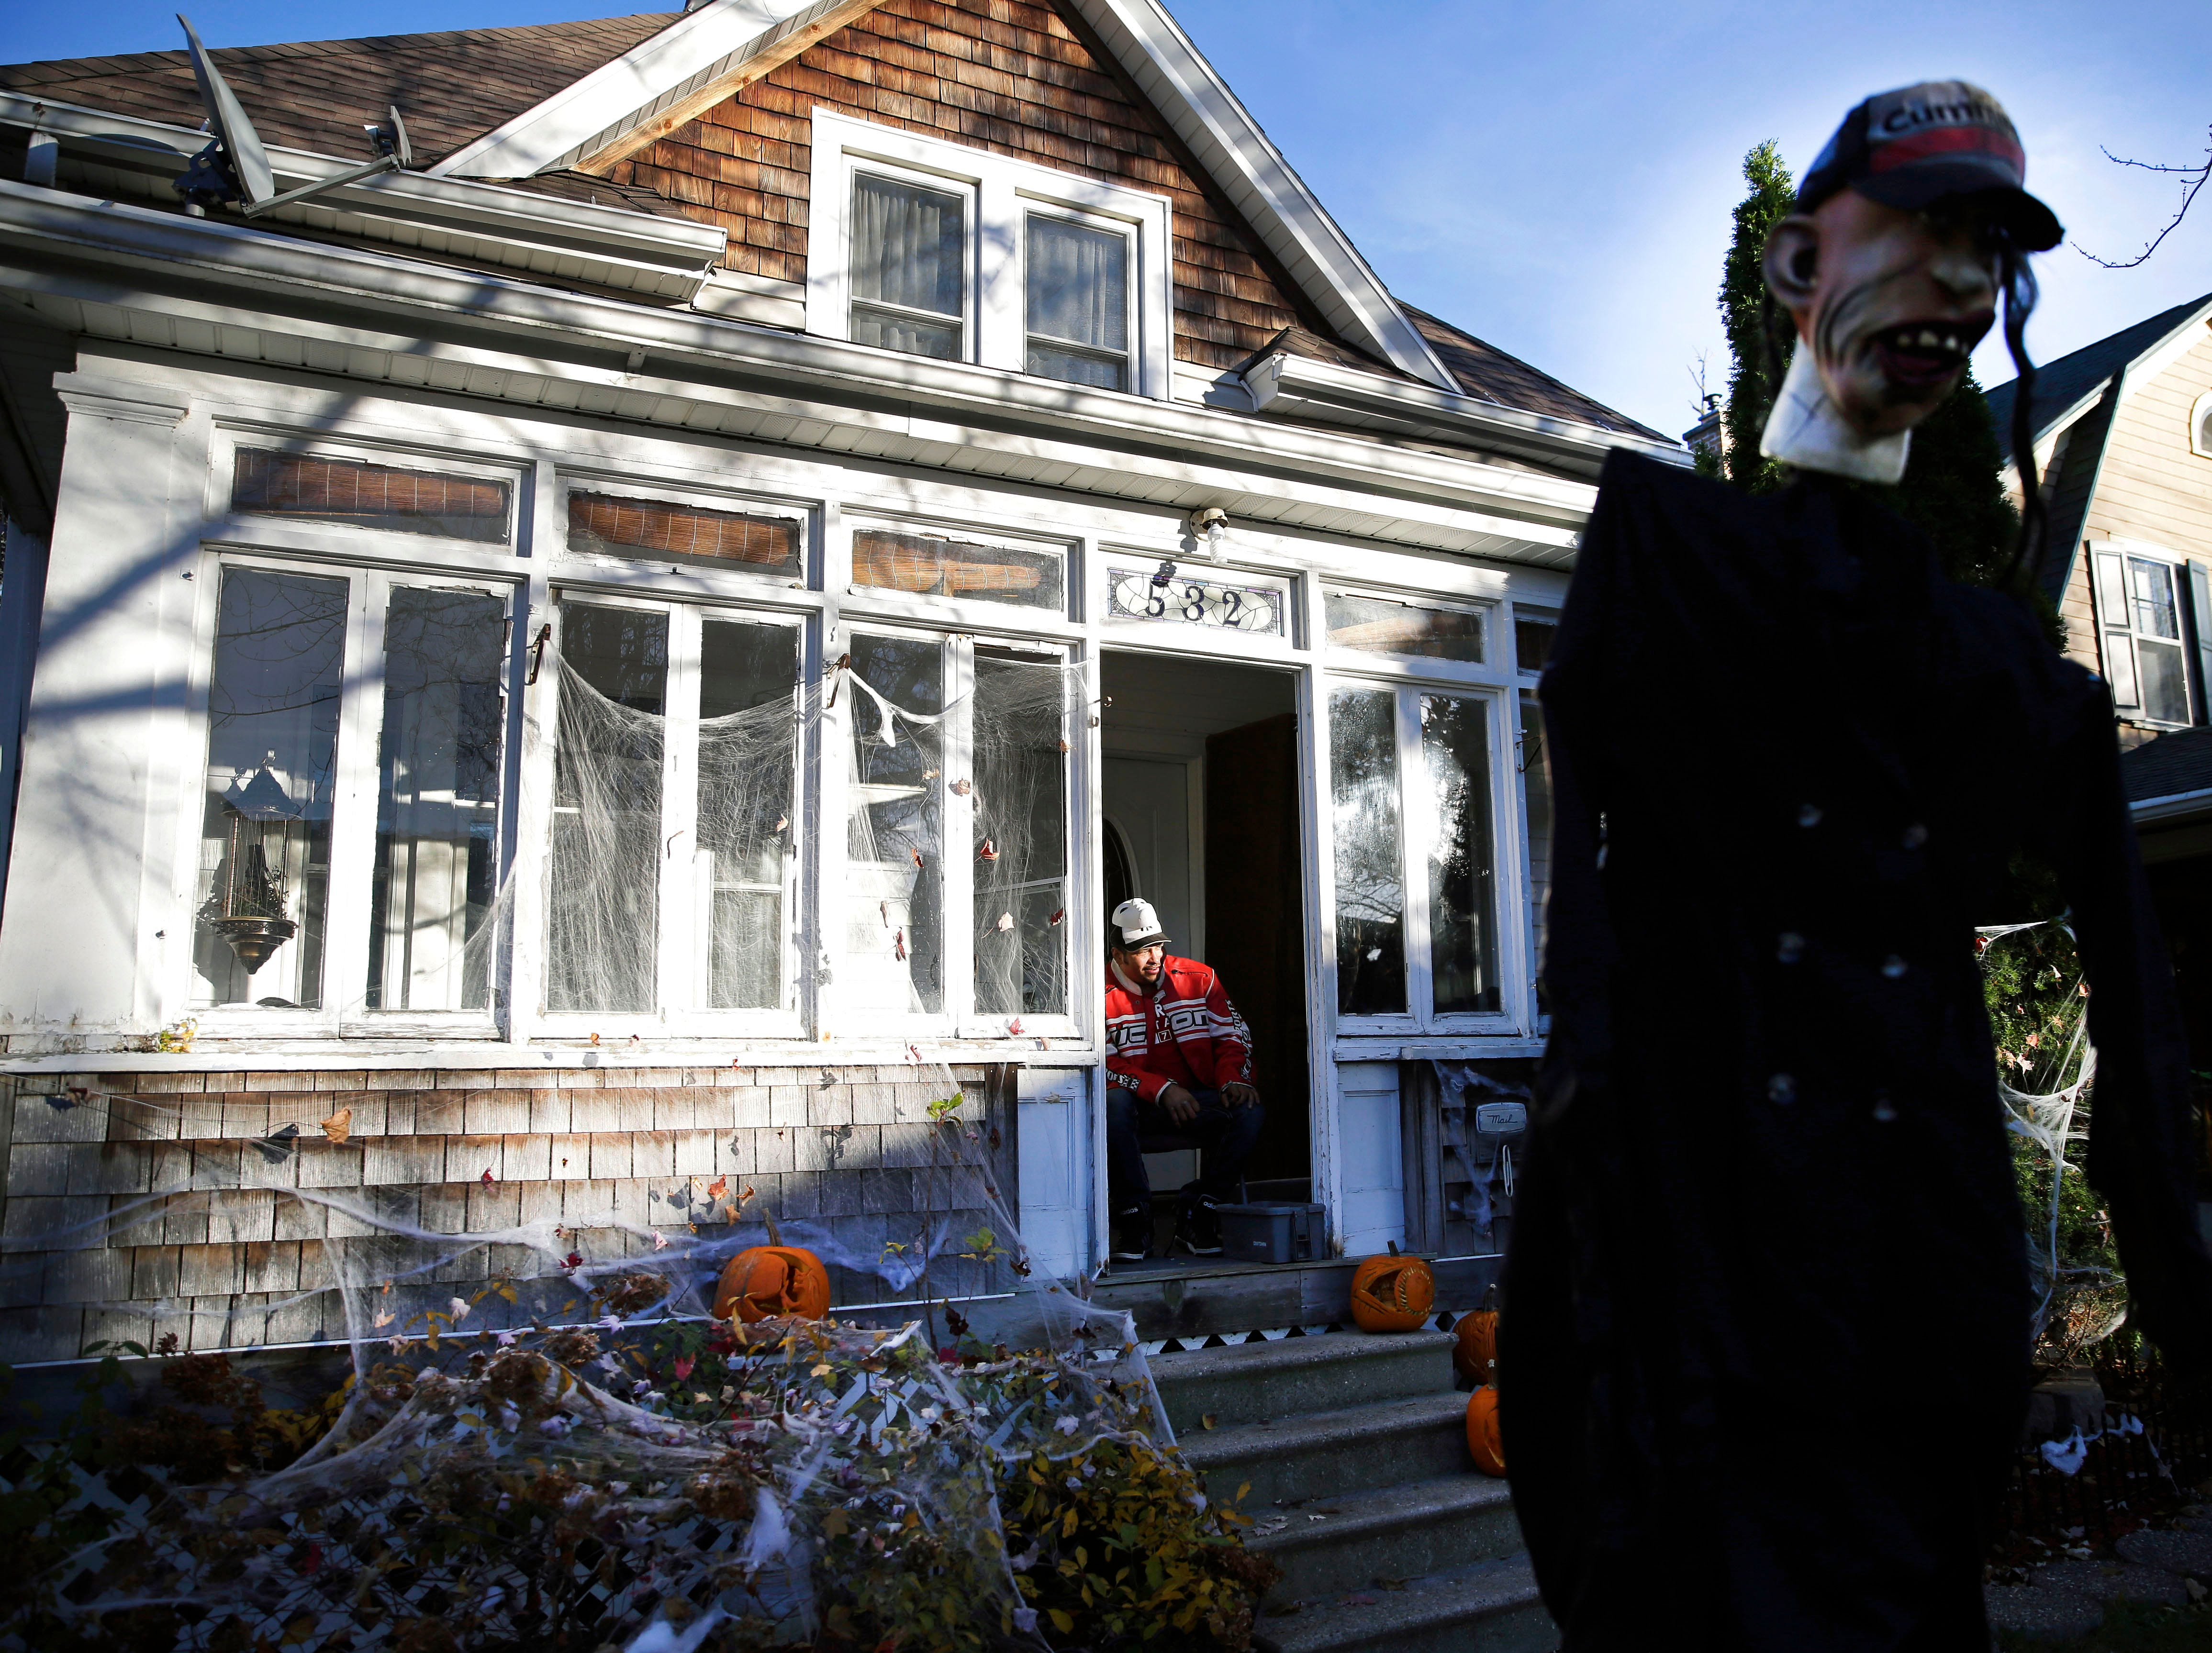 Scott Littles has his house ready for trick-or-treaters Wednesday, October 31, 2018, in Appleton, Wis.